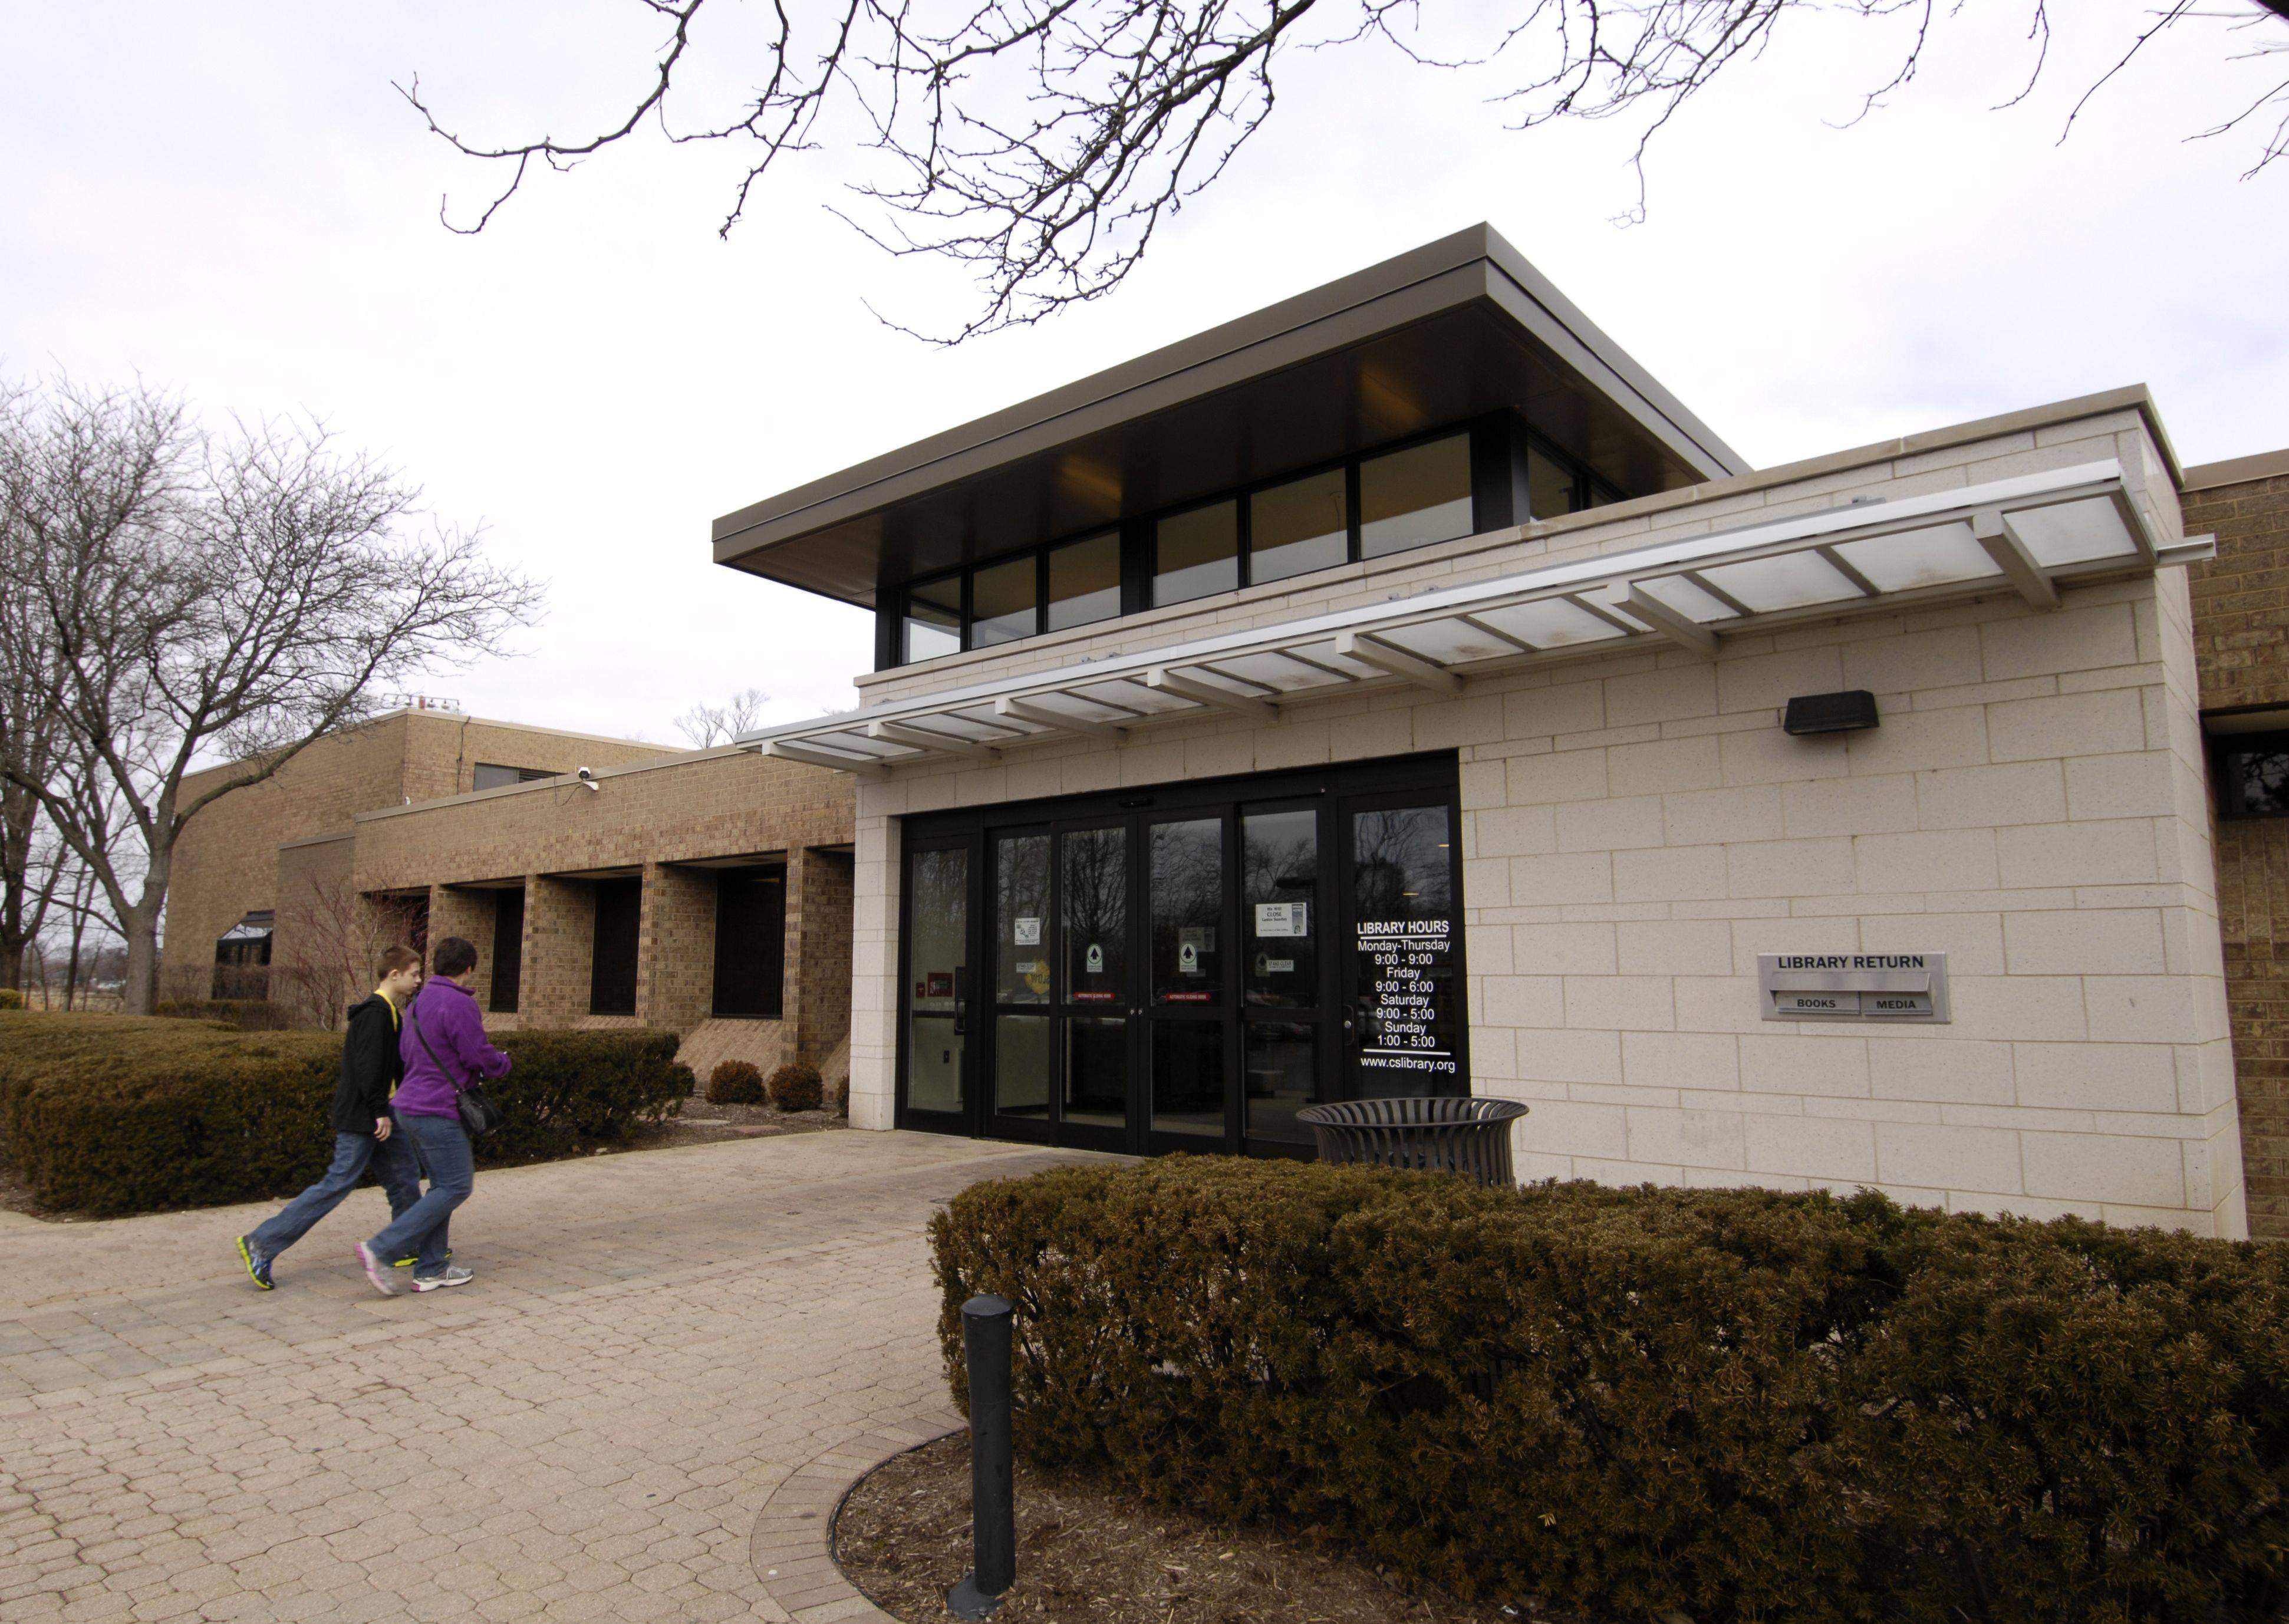 A new majority is coming to the Carol Stream Library board after the Support the Library slate swept all five available positions in Tuesday�s election.